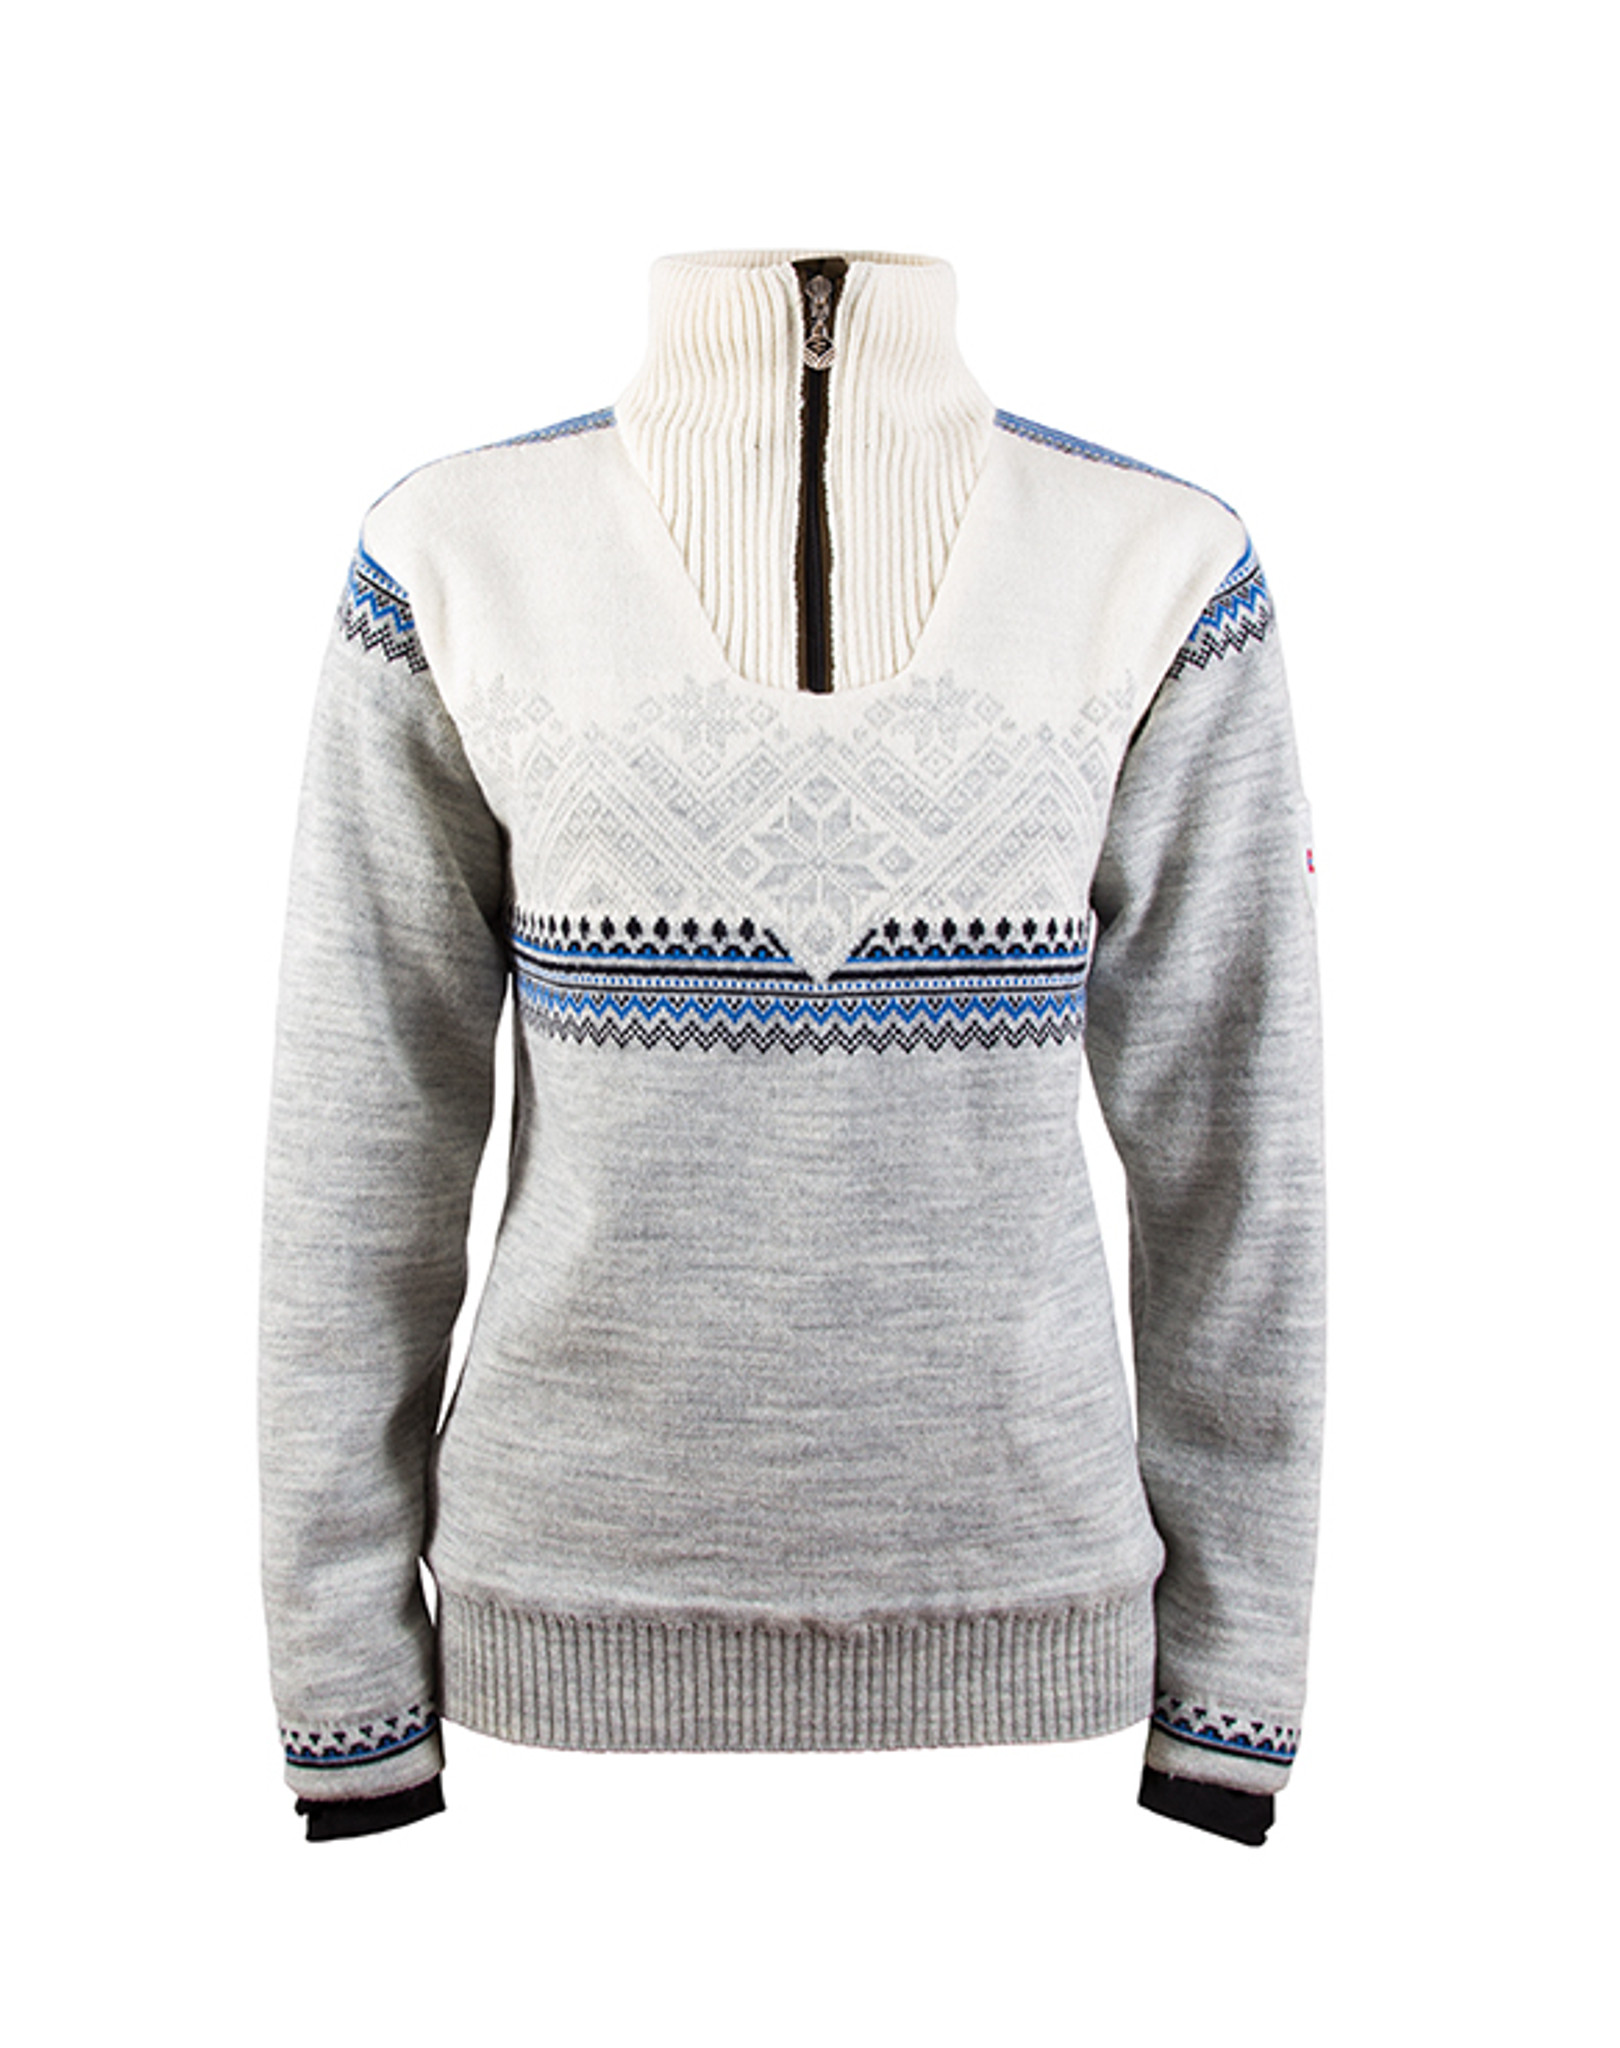 235cced5d68 Dale of Norway Glittertind Sweater for women in Light Charcoal